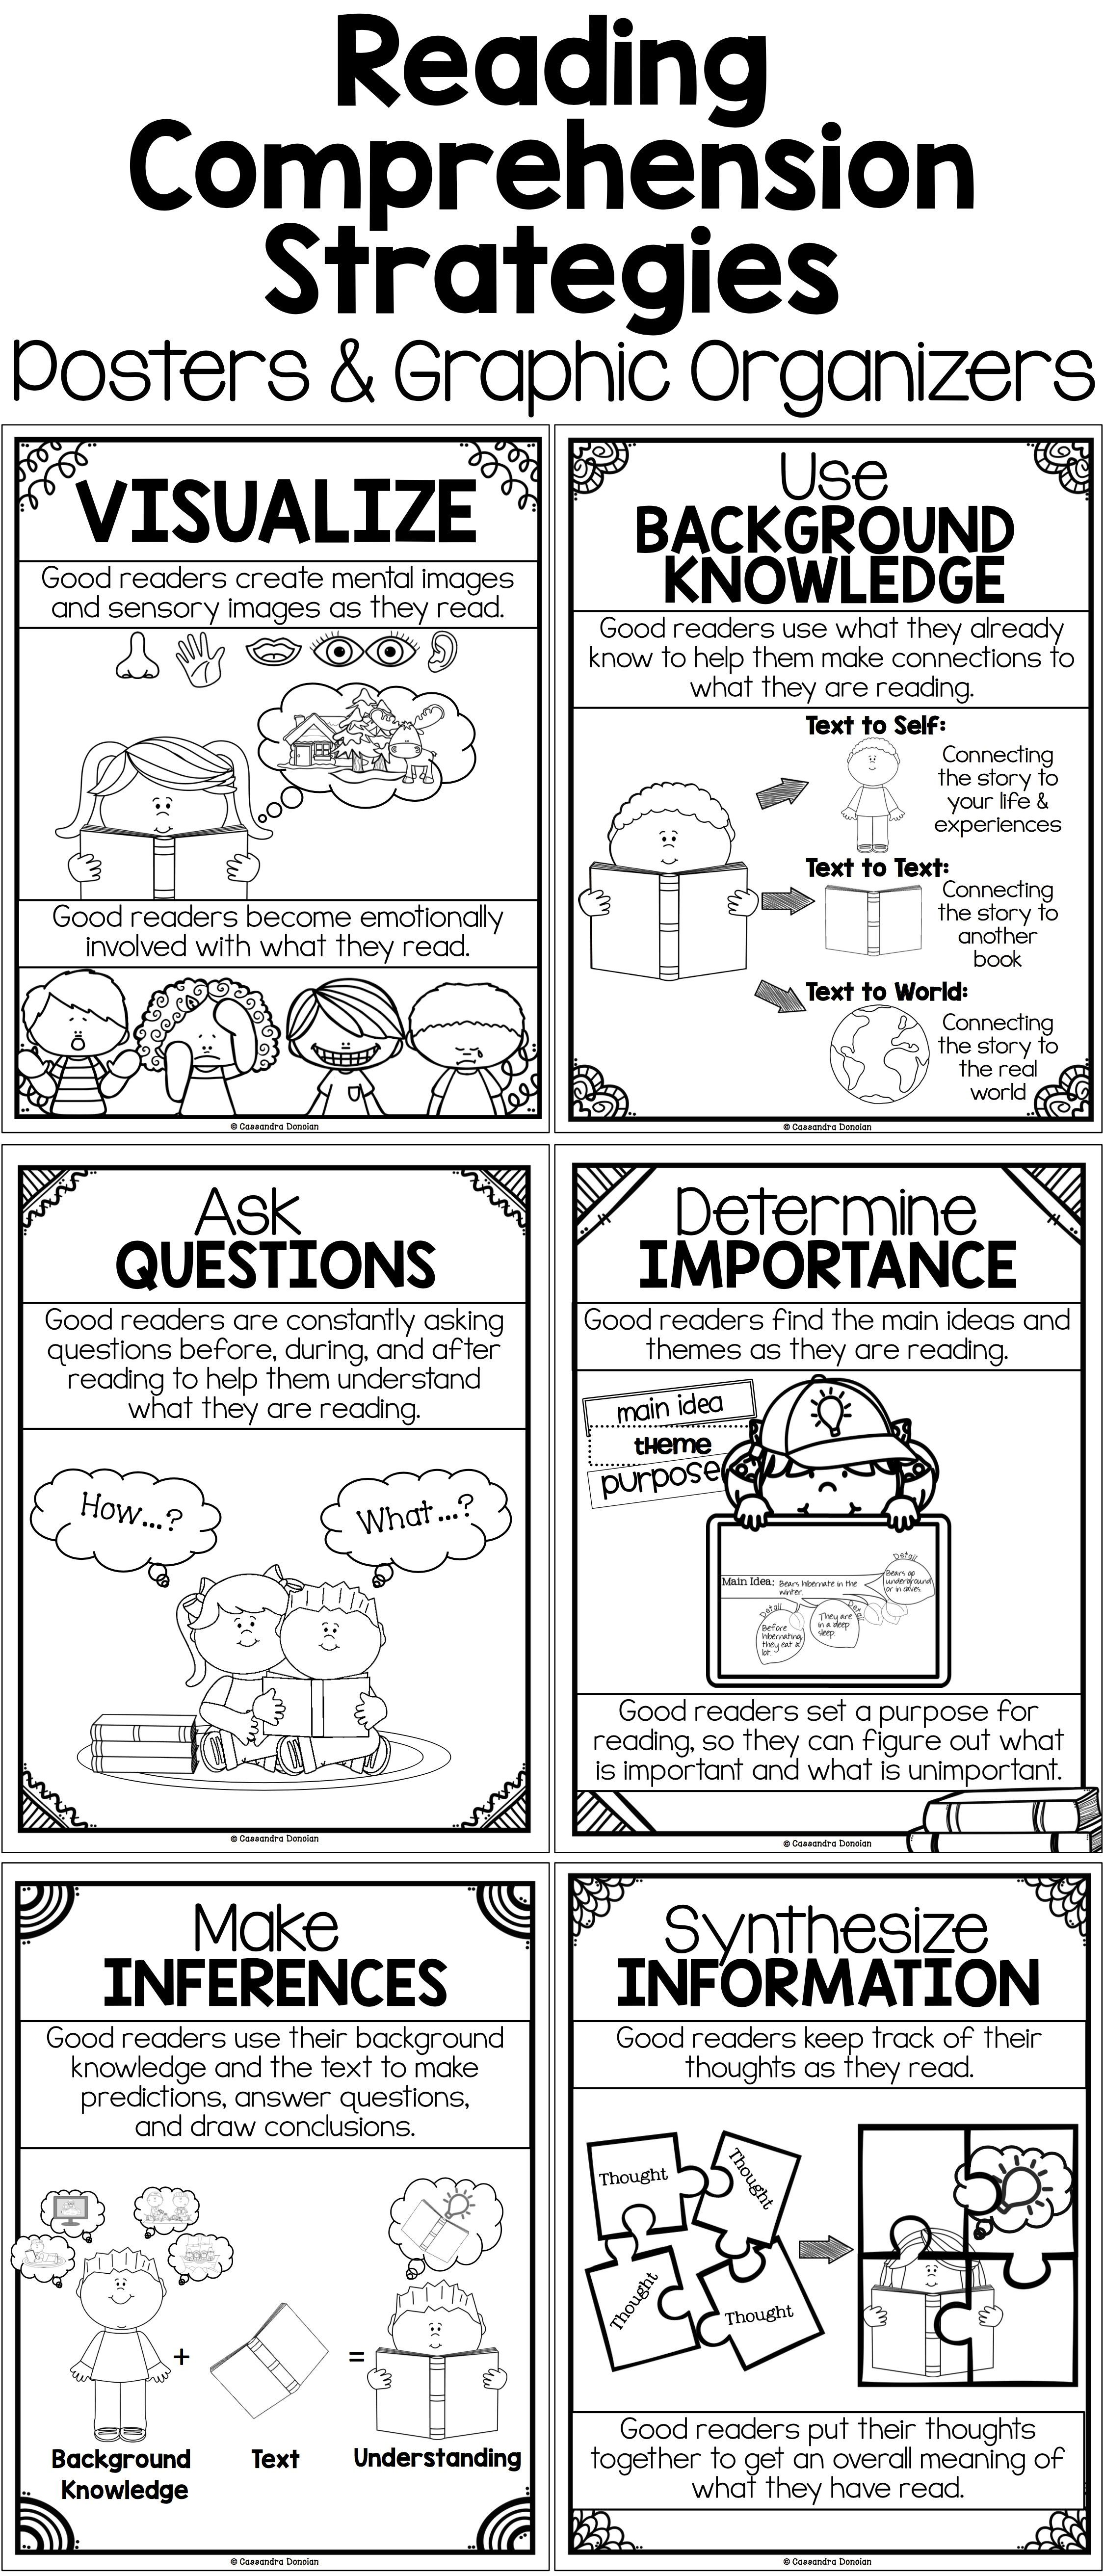 Research Based Reading Comprehension Strategies Posters B